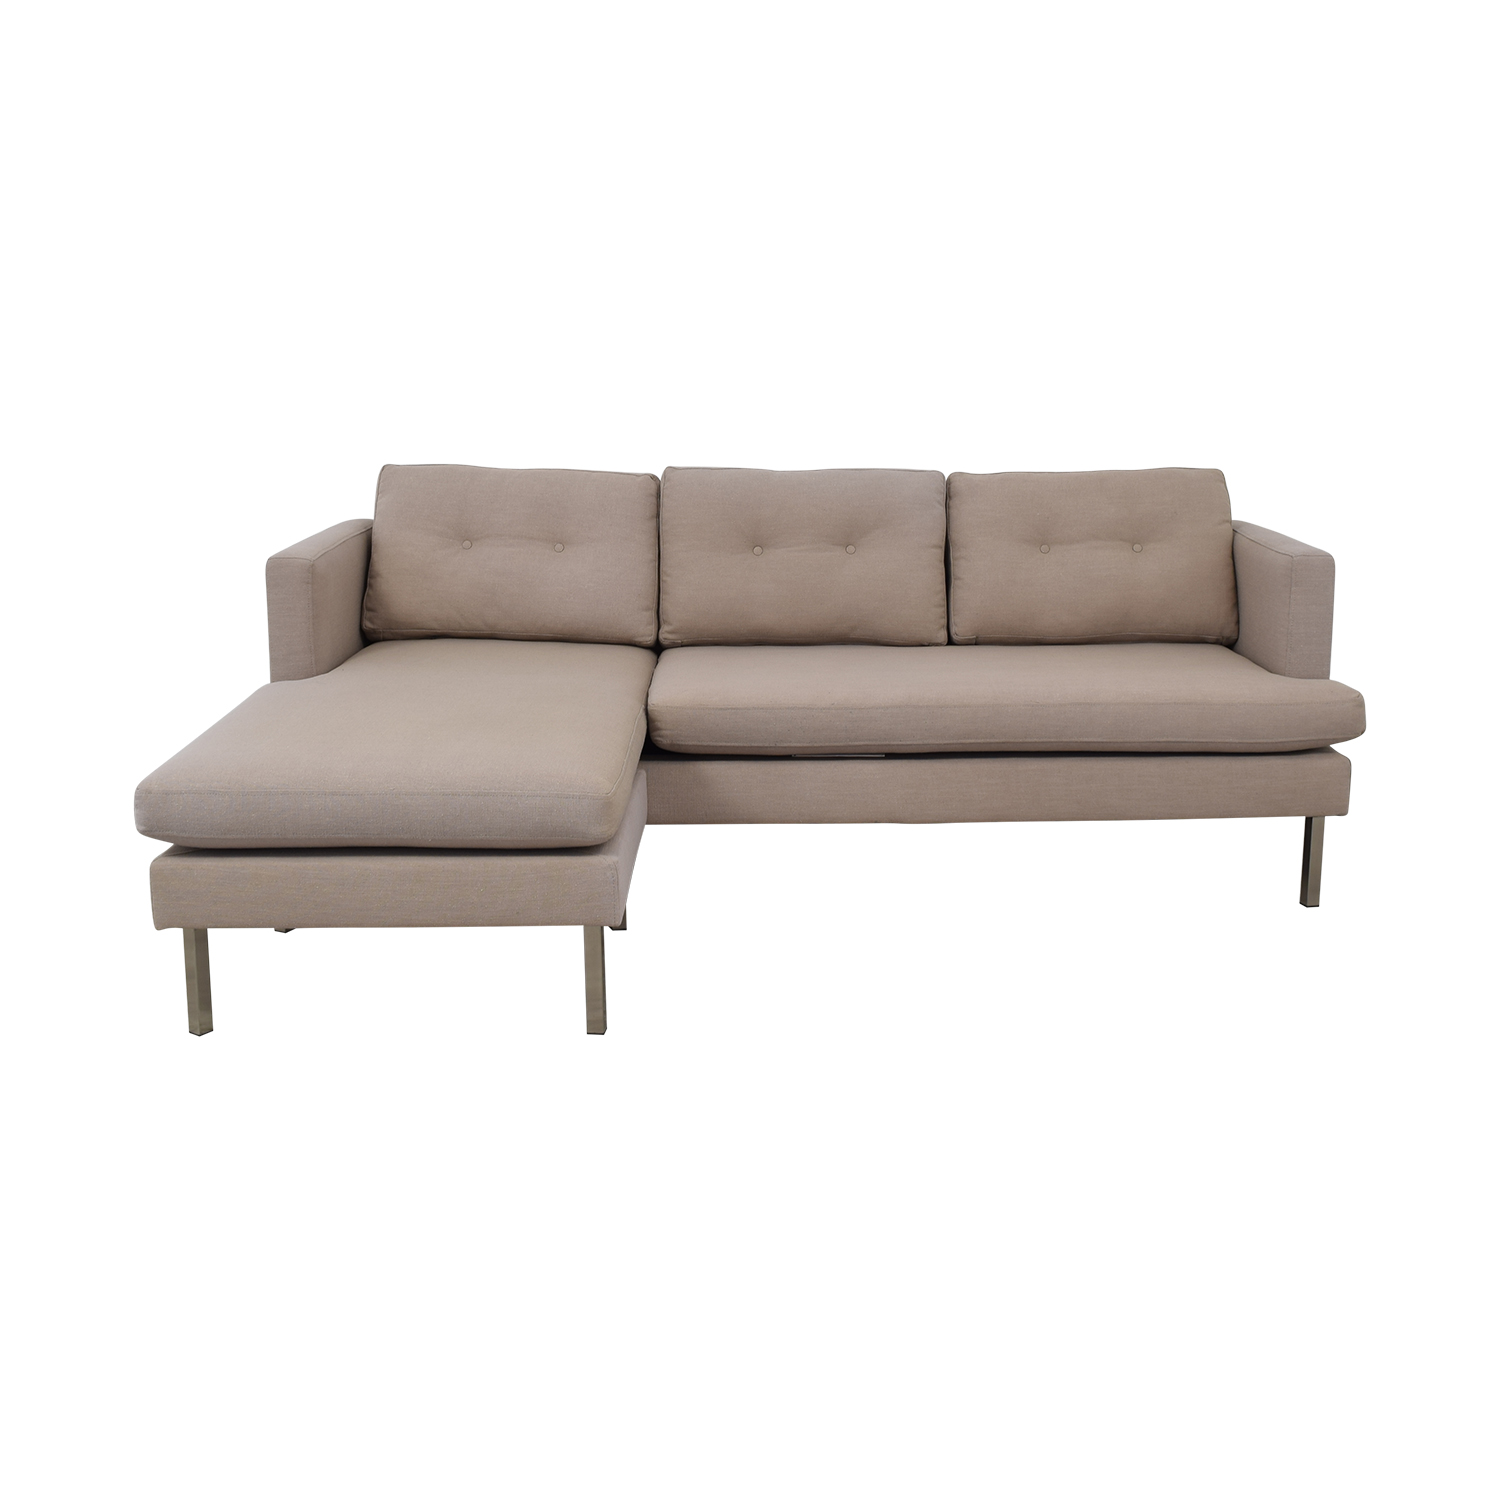 West Elm West Elm Beige Chaise Sectional coupon